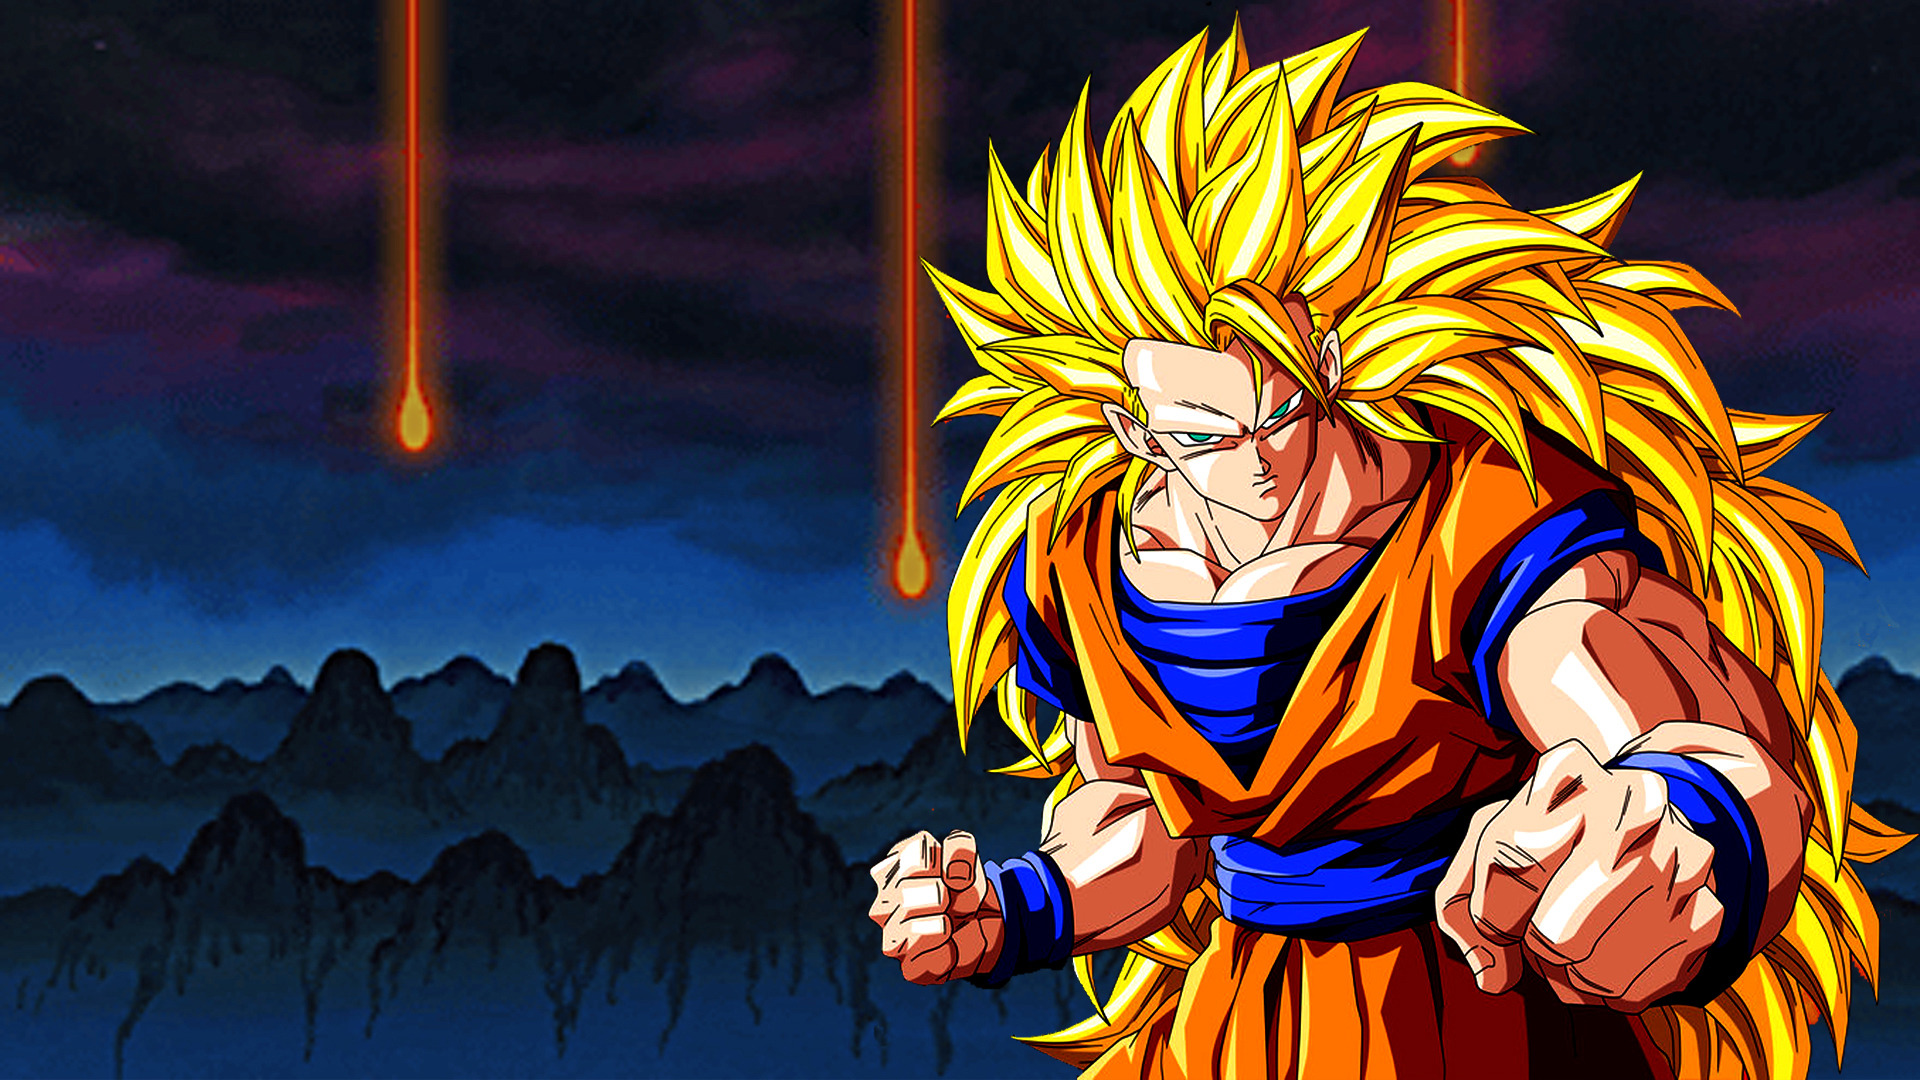 Goku - Dragon Ball HD Wallpaper 1920x1080